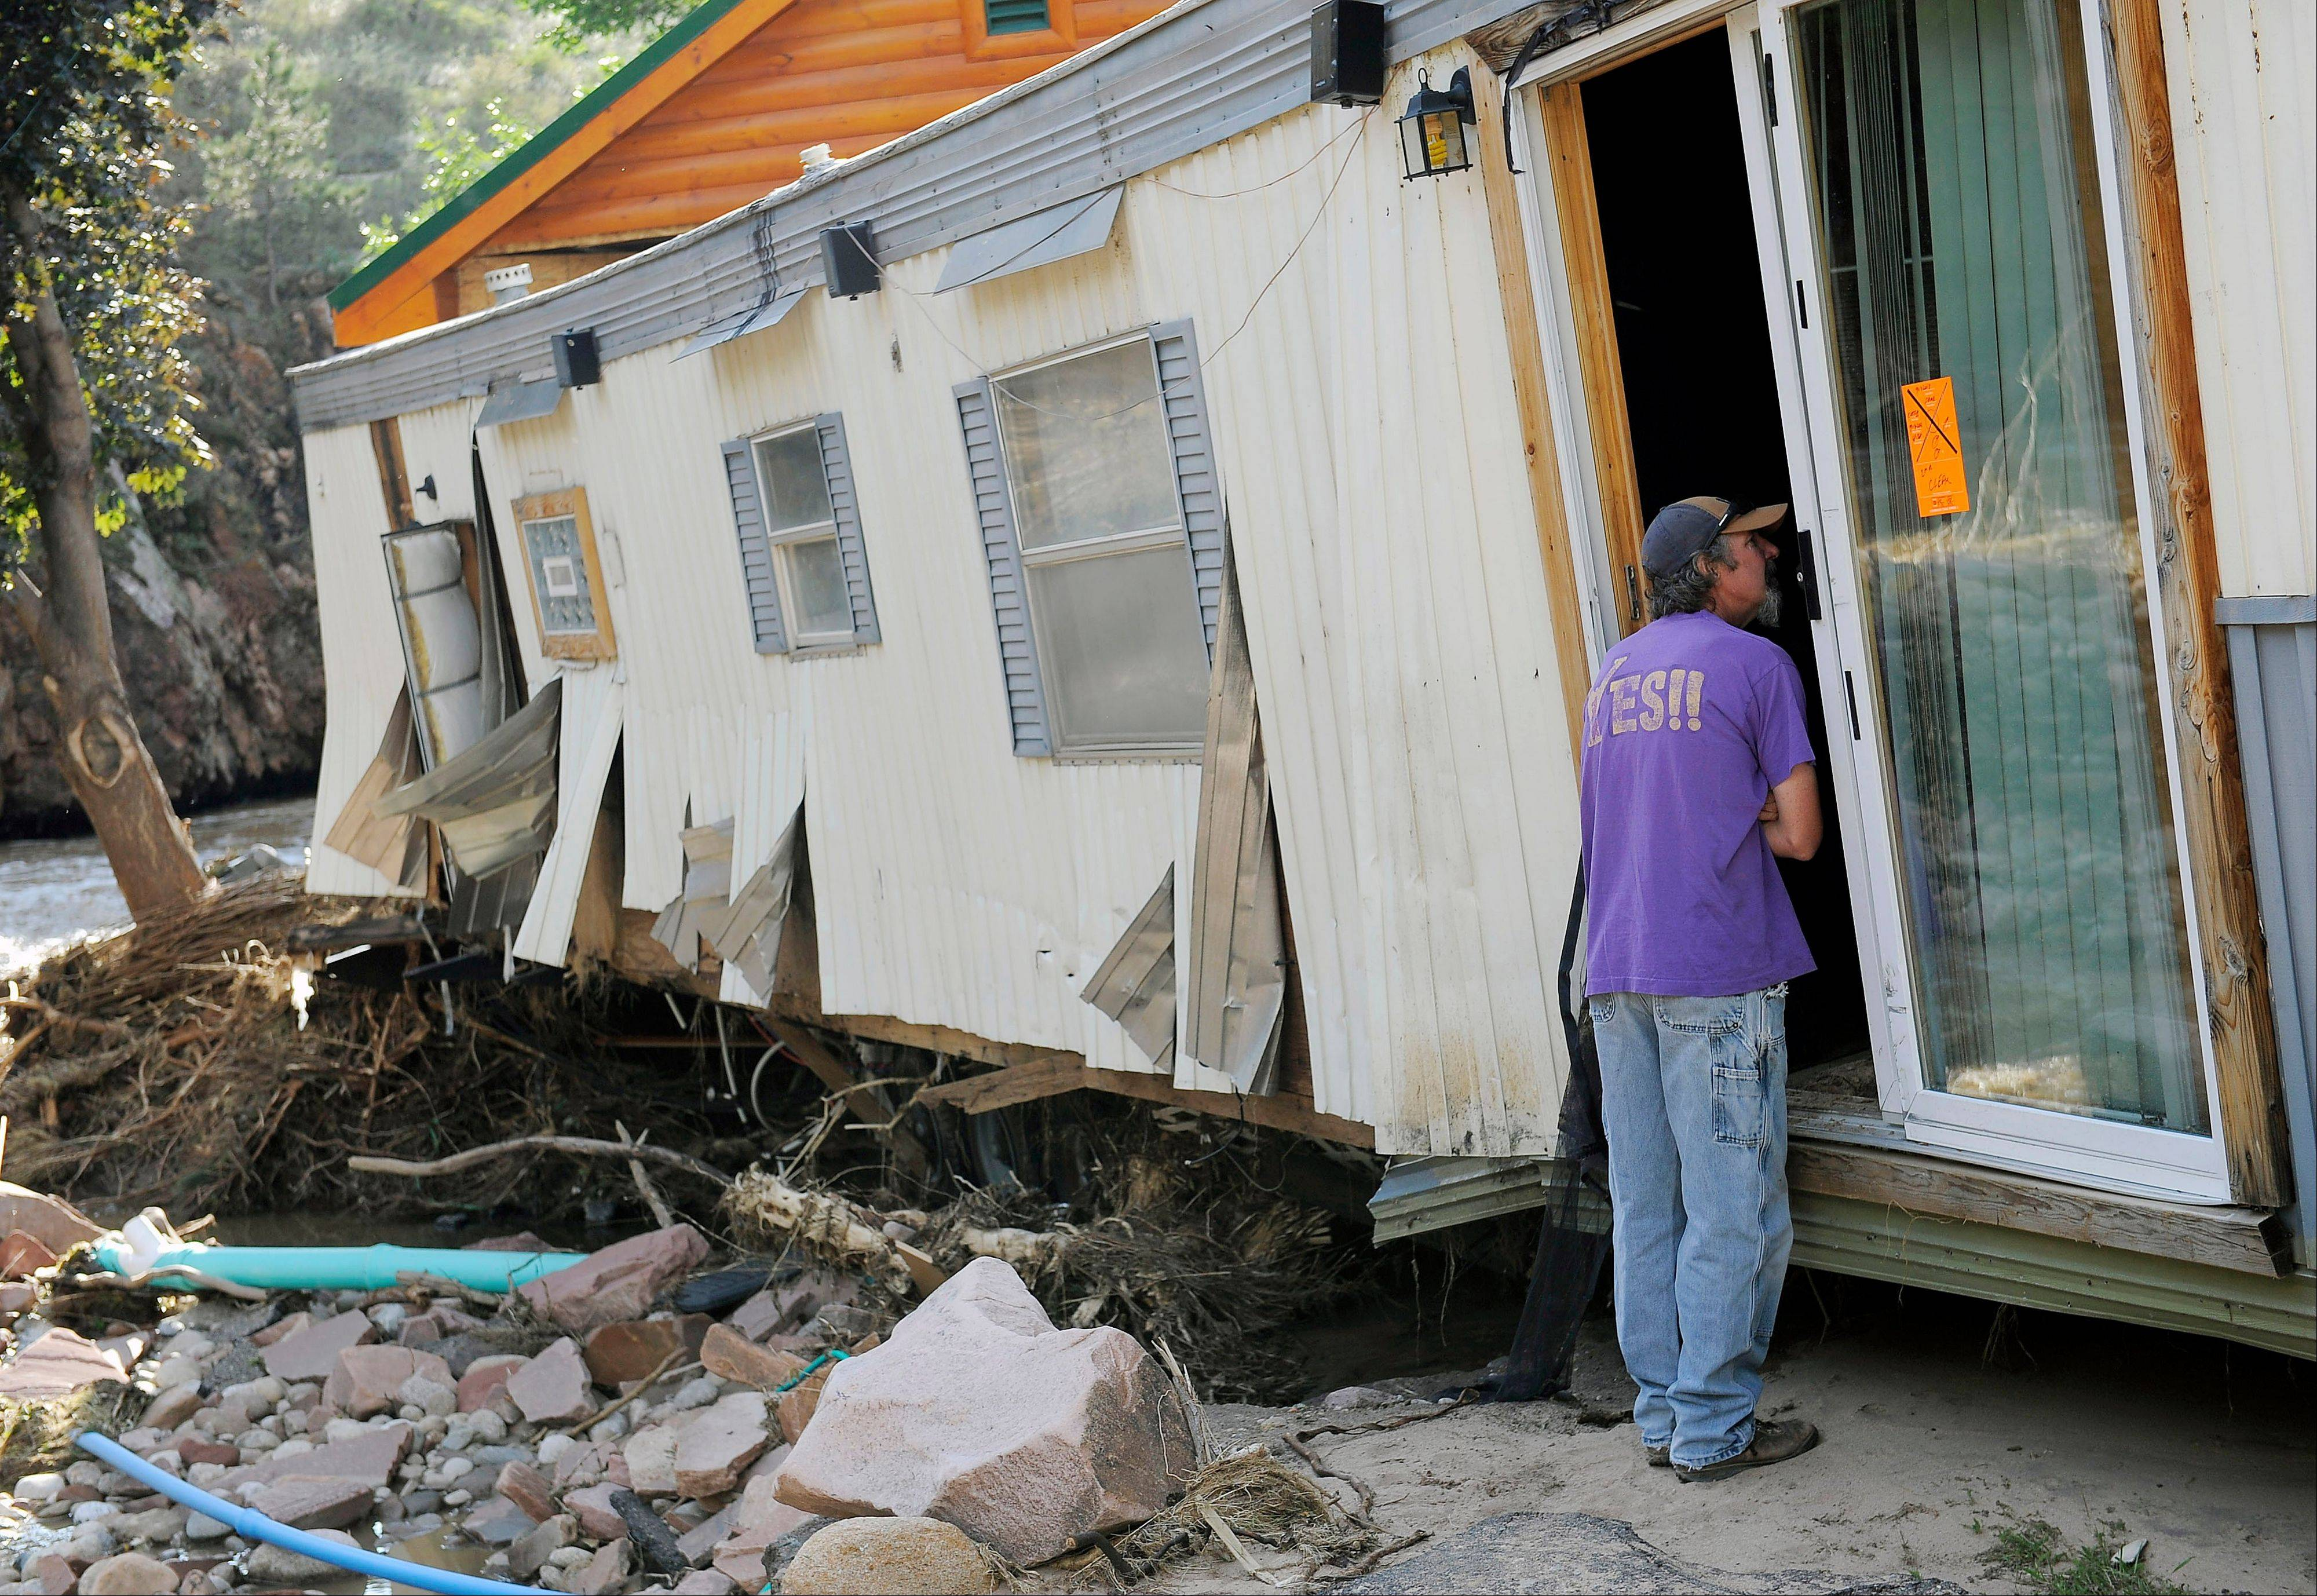 Dirk Huntington checks on a friend's flood-damaged trailer at the River Bend Mobile Home Park in Lyons, Colo., on Thursday, Sept. 19, 2013. Hundreds of evacuees were allowed past National Guard roadblocks Thursday to find a scene of tangled power lines, downed utility poles, and mud-caked homes and vehicles.